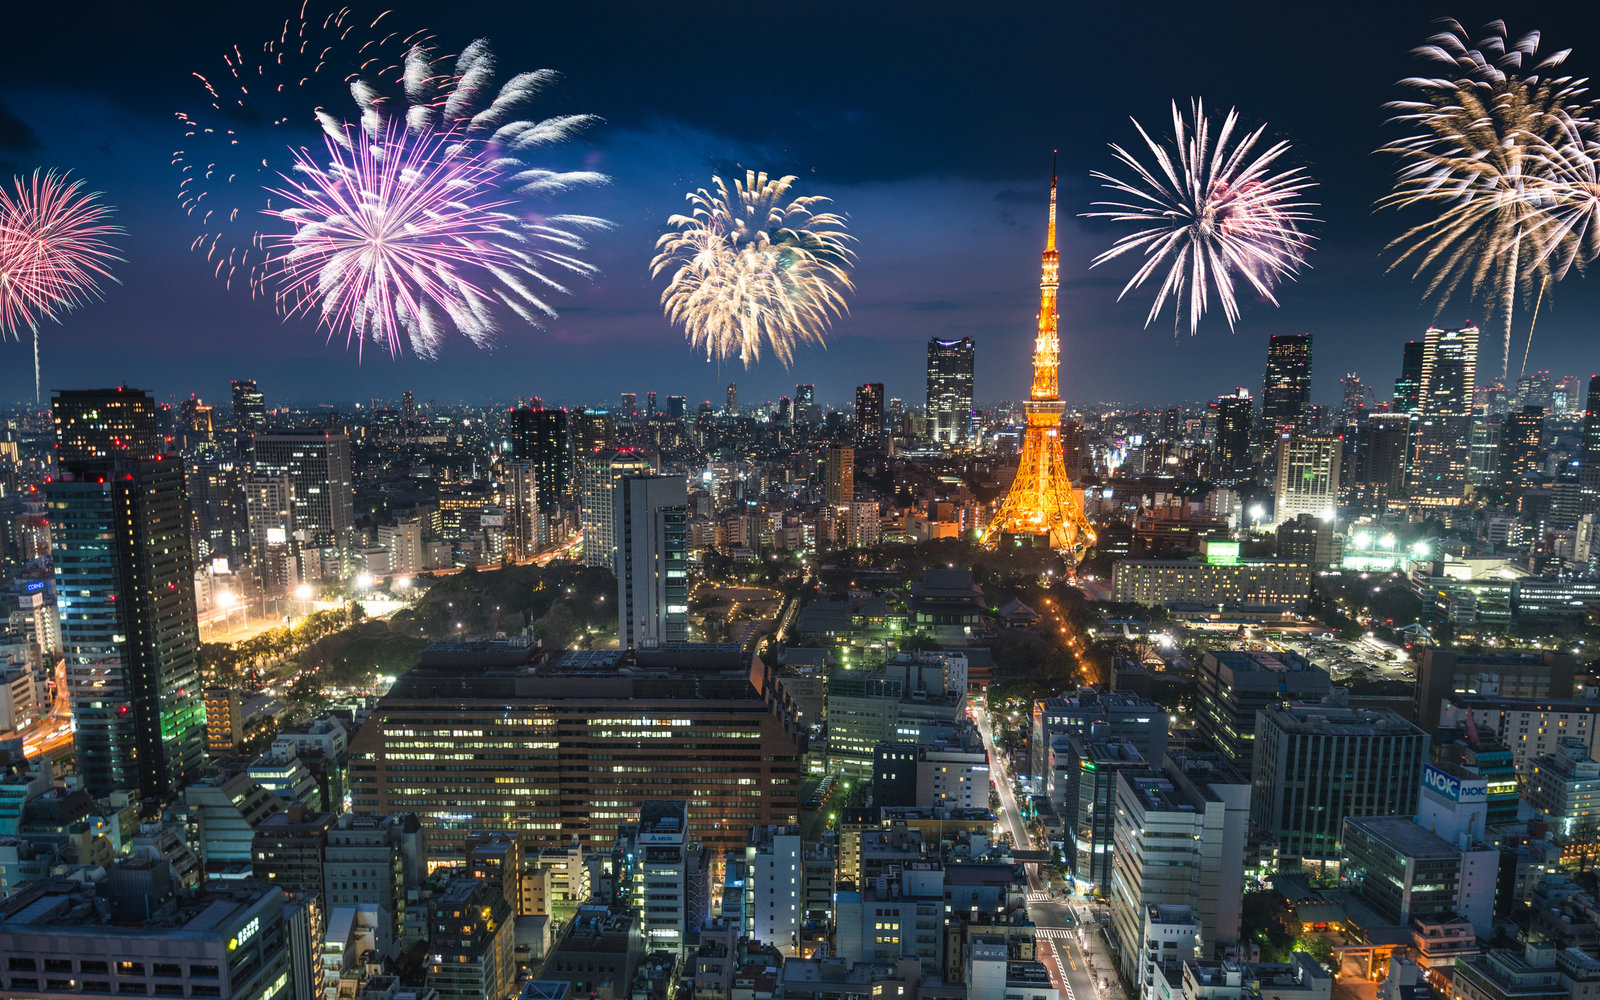 Tokyo Japan New Year's Eve